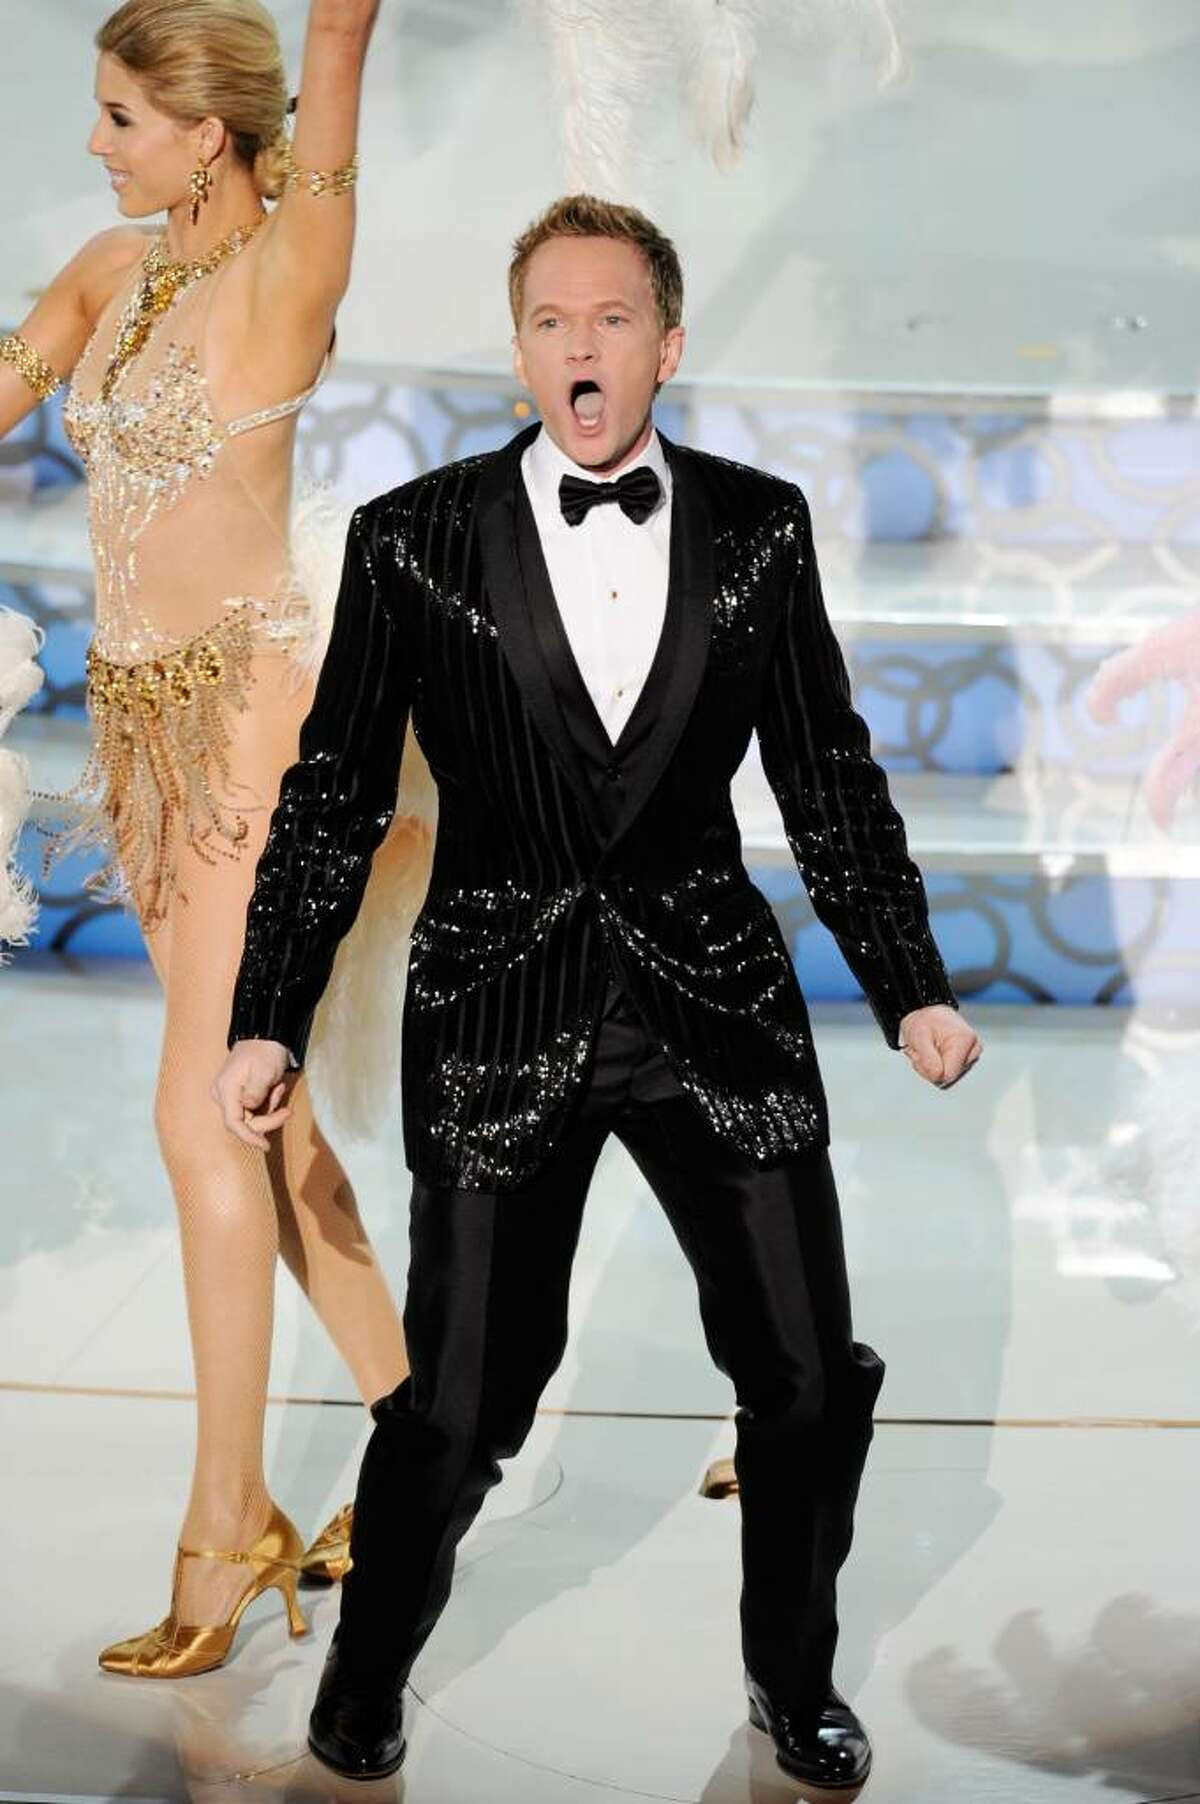 HOLLYWOOD - MARCH 07: Actor Neil Patrick Harris performs onstage during the 82nd Annual Academy Awards held at Kodak Theatre on March 7, 2010 in Hollywood, California. (Photo by Kevin Winter/Getty Images) *** Local Caption *** Neil Patrick Harris